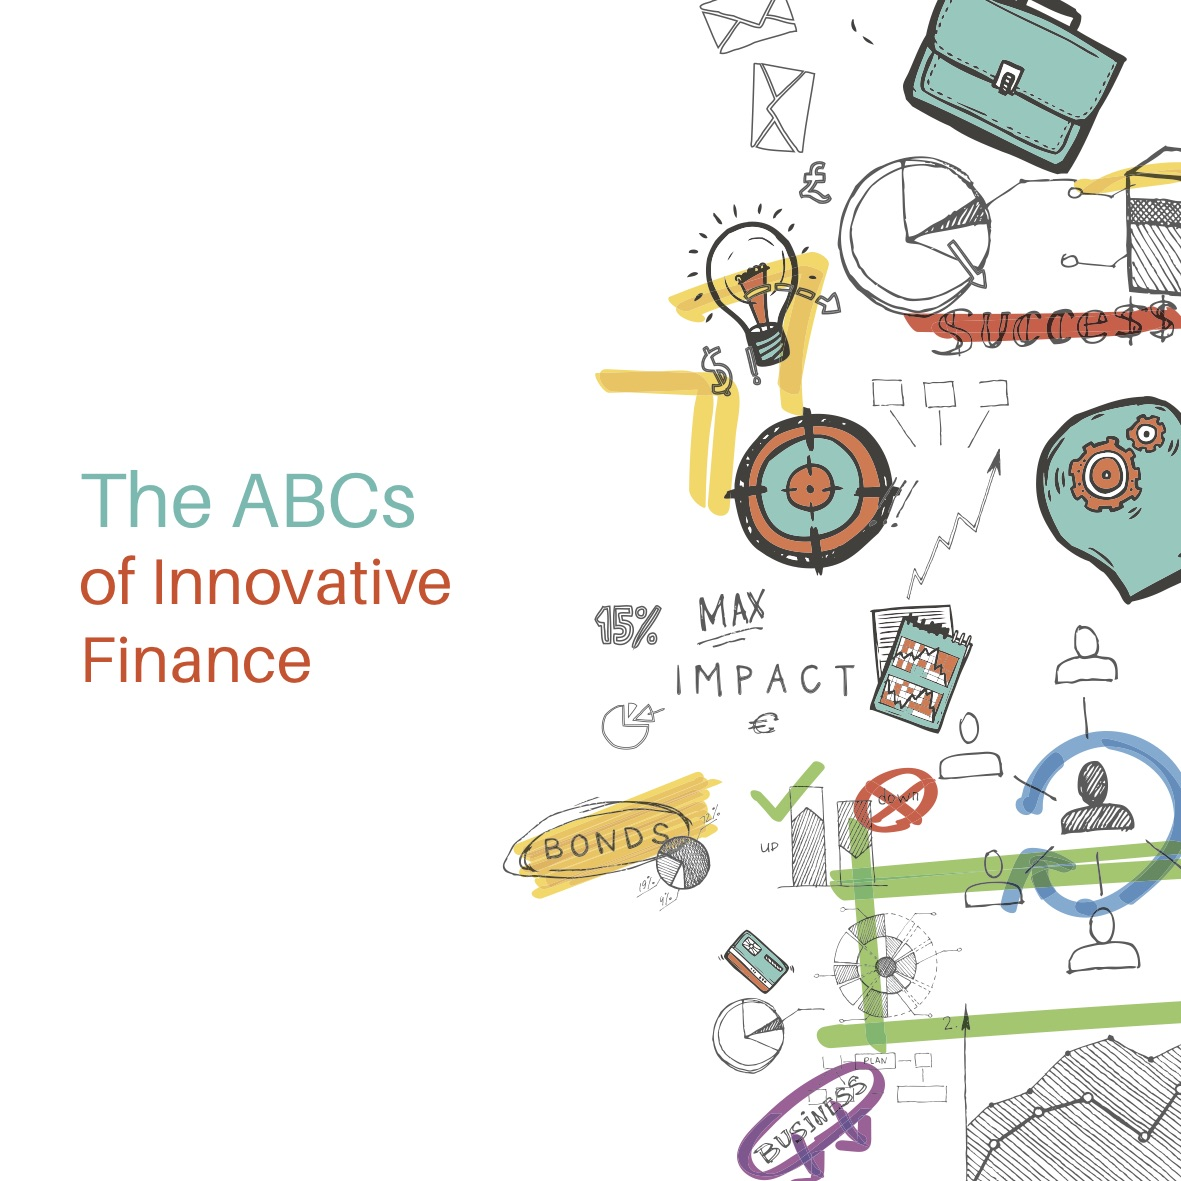 The ABCs of Innovative Finance